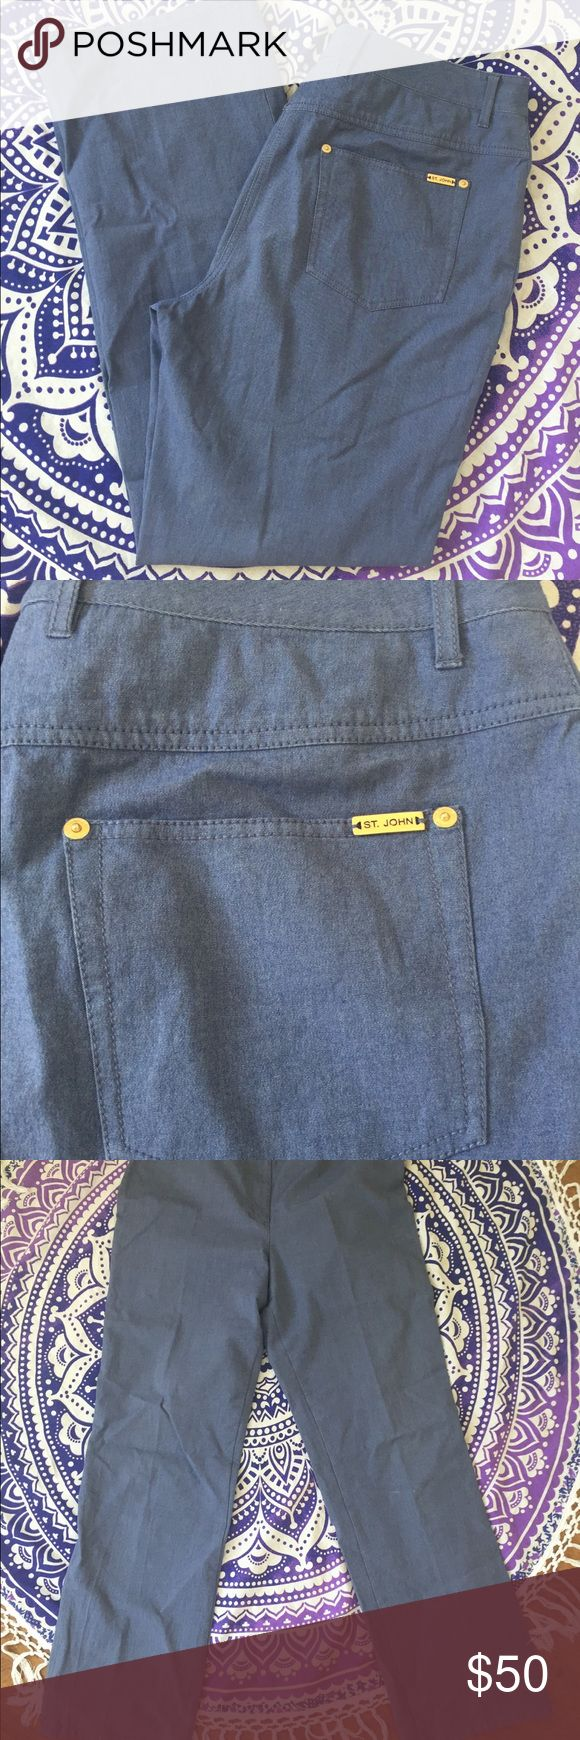 St. John Sport Slacks Denim Cotton 14 Excellent condition with no defects or signs of wear! Women's size 14. Please note photos for inseam. These are a denim blue color but not true jeans. They are lightweight slacks. Great cruise / resort wear. Gold tone hardware. St. John Sport by Marie Gray Pants Trousers